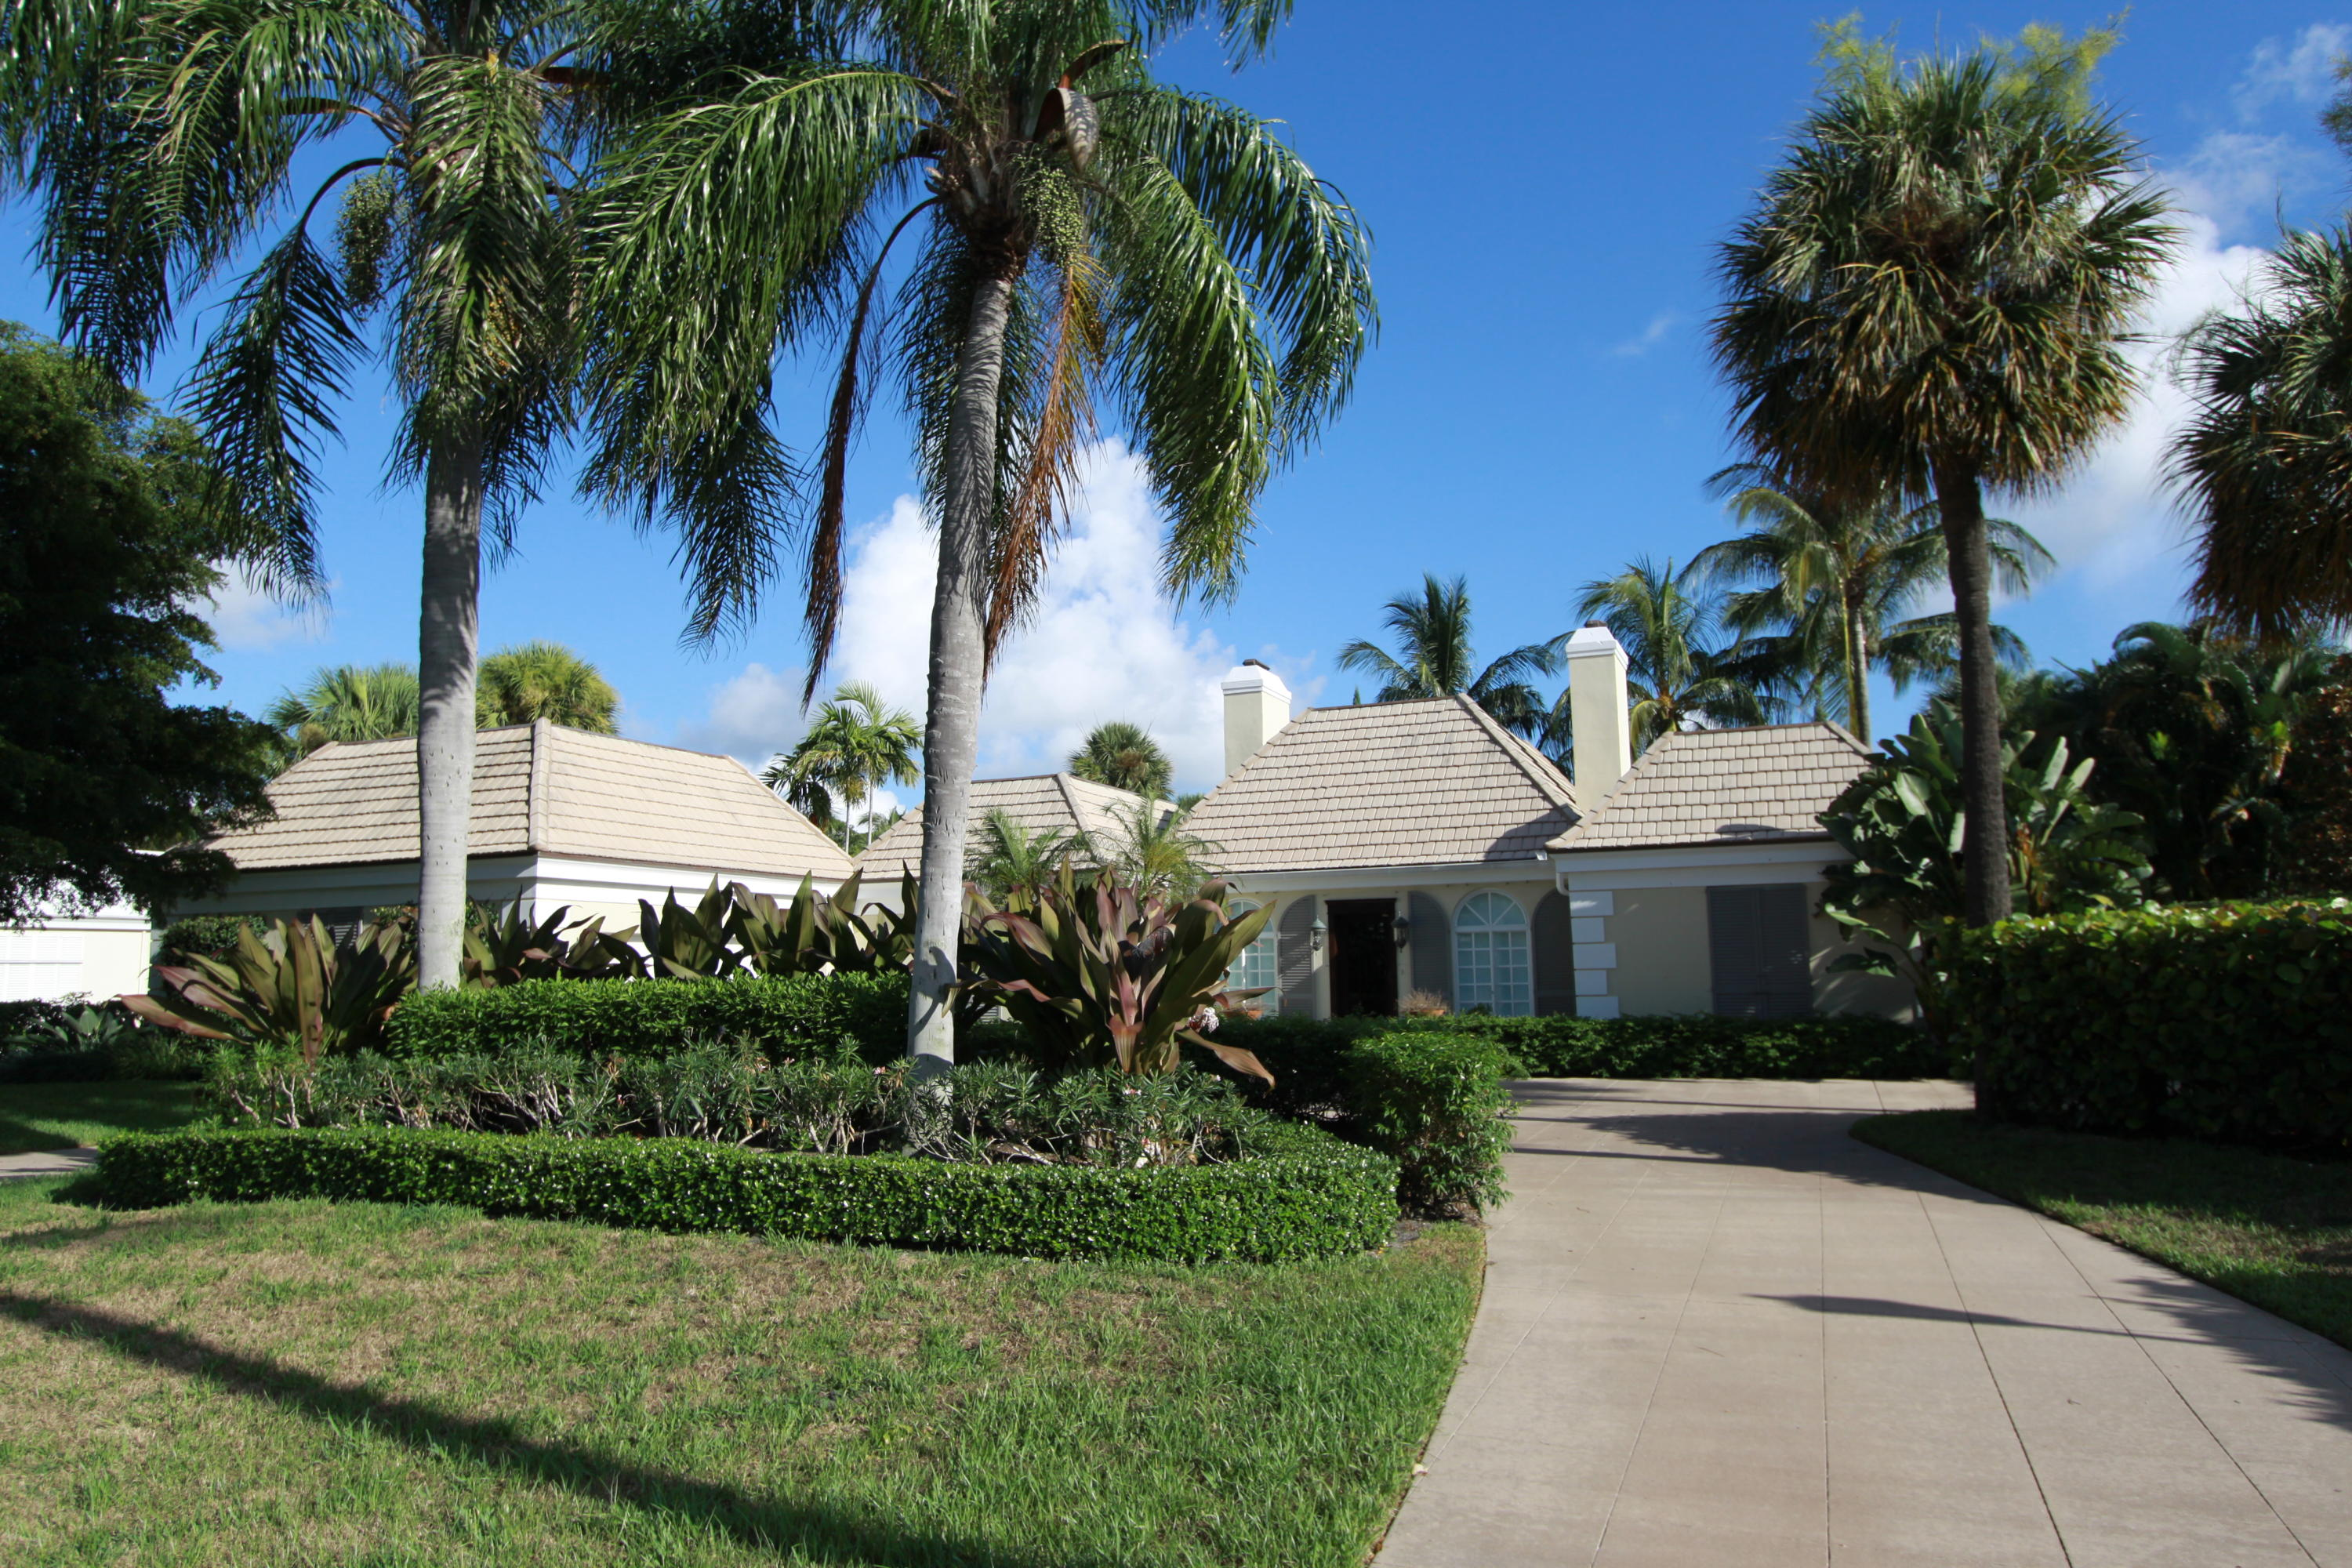 971 Lake House Drive, North Palm Beach, Florida 33408, 4 Bedrooms Bedrooms, ,4.1 BathroomsBathrooms,A,Single family,Lake House,RX-10547969